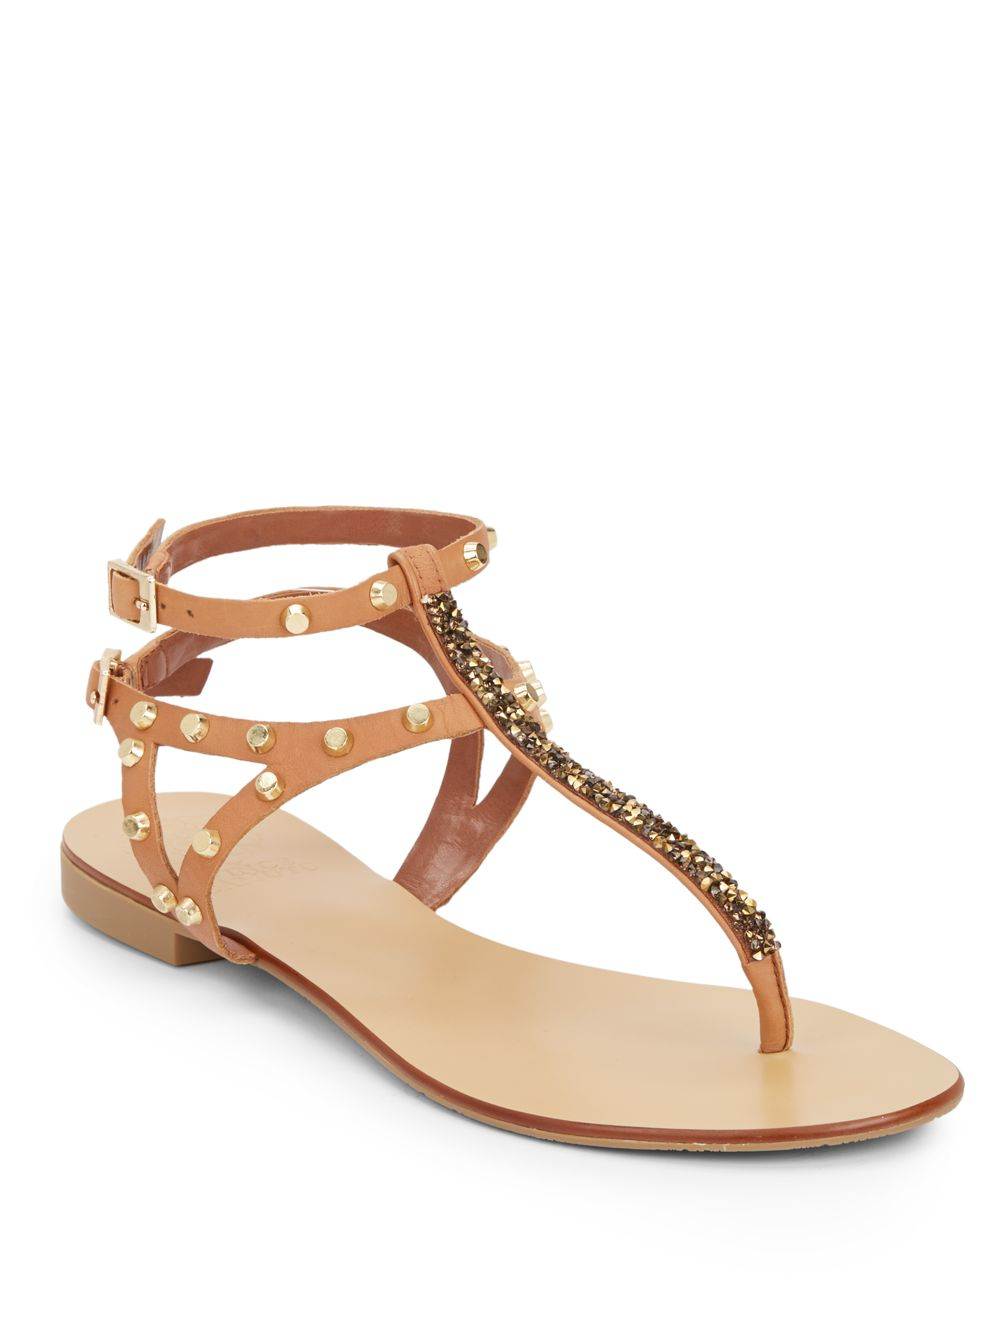 cc096a49174 Lyst - Vince Camuto Jemile Embellished Leather Thong Sandals in Natural